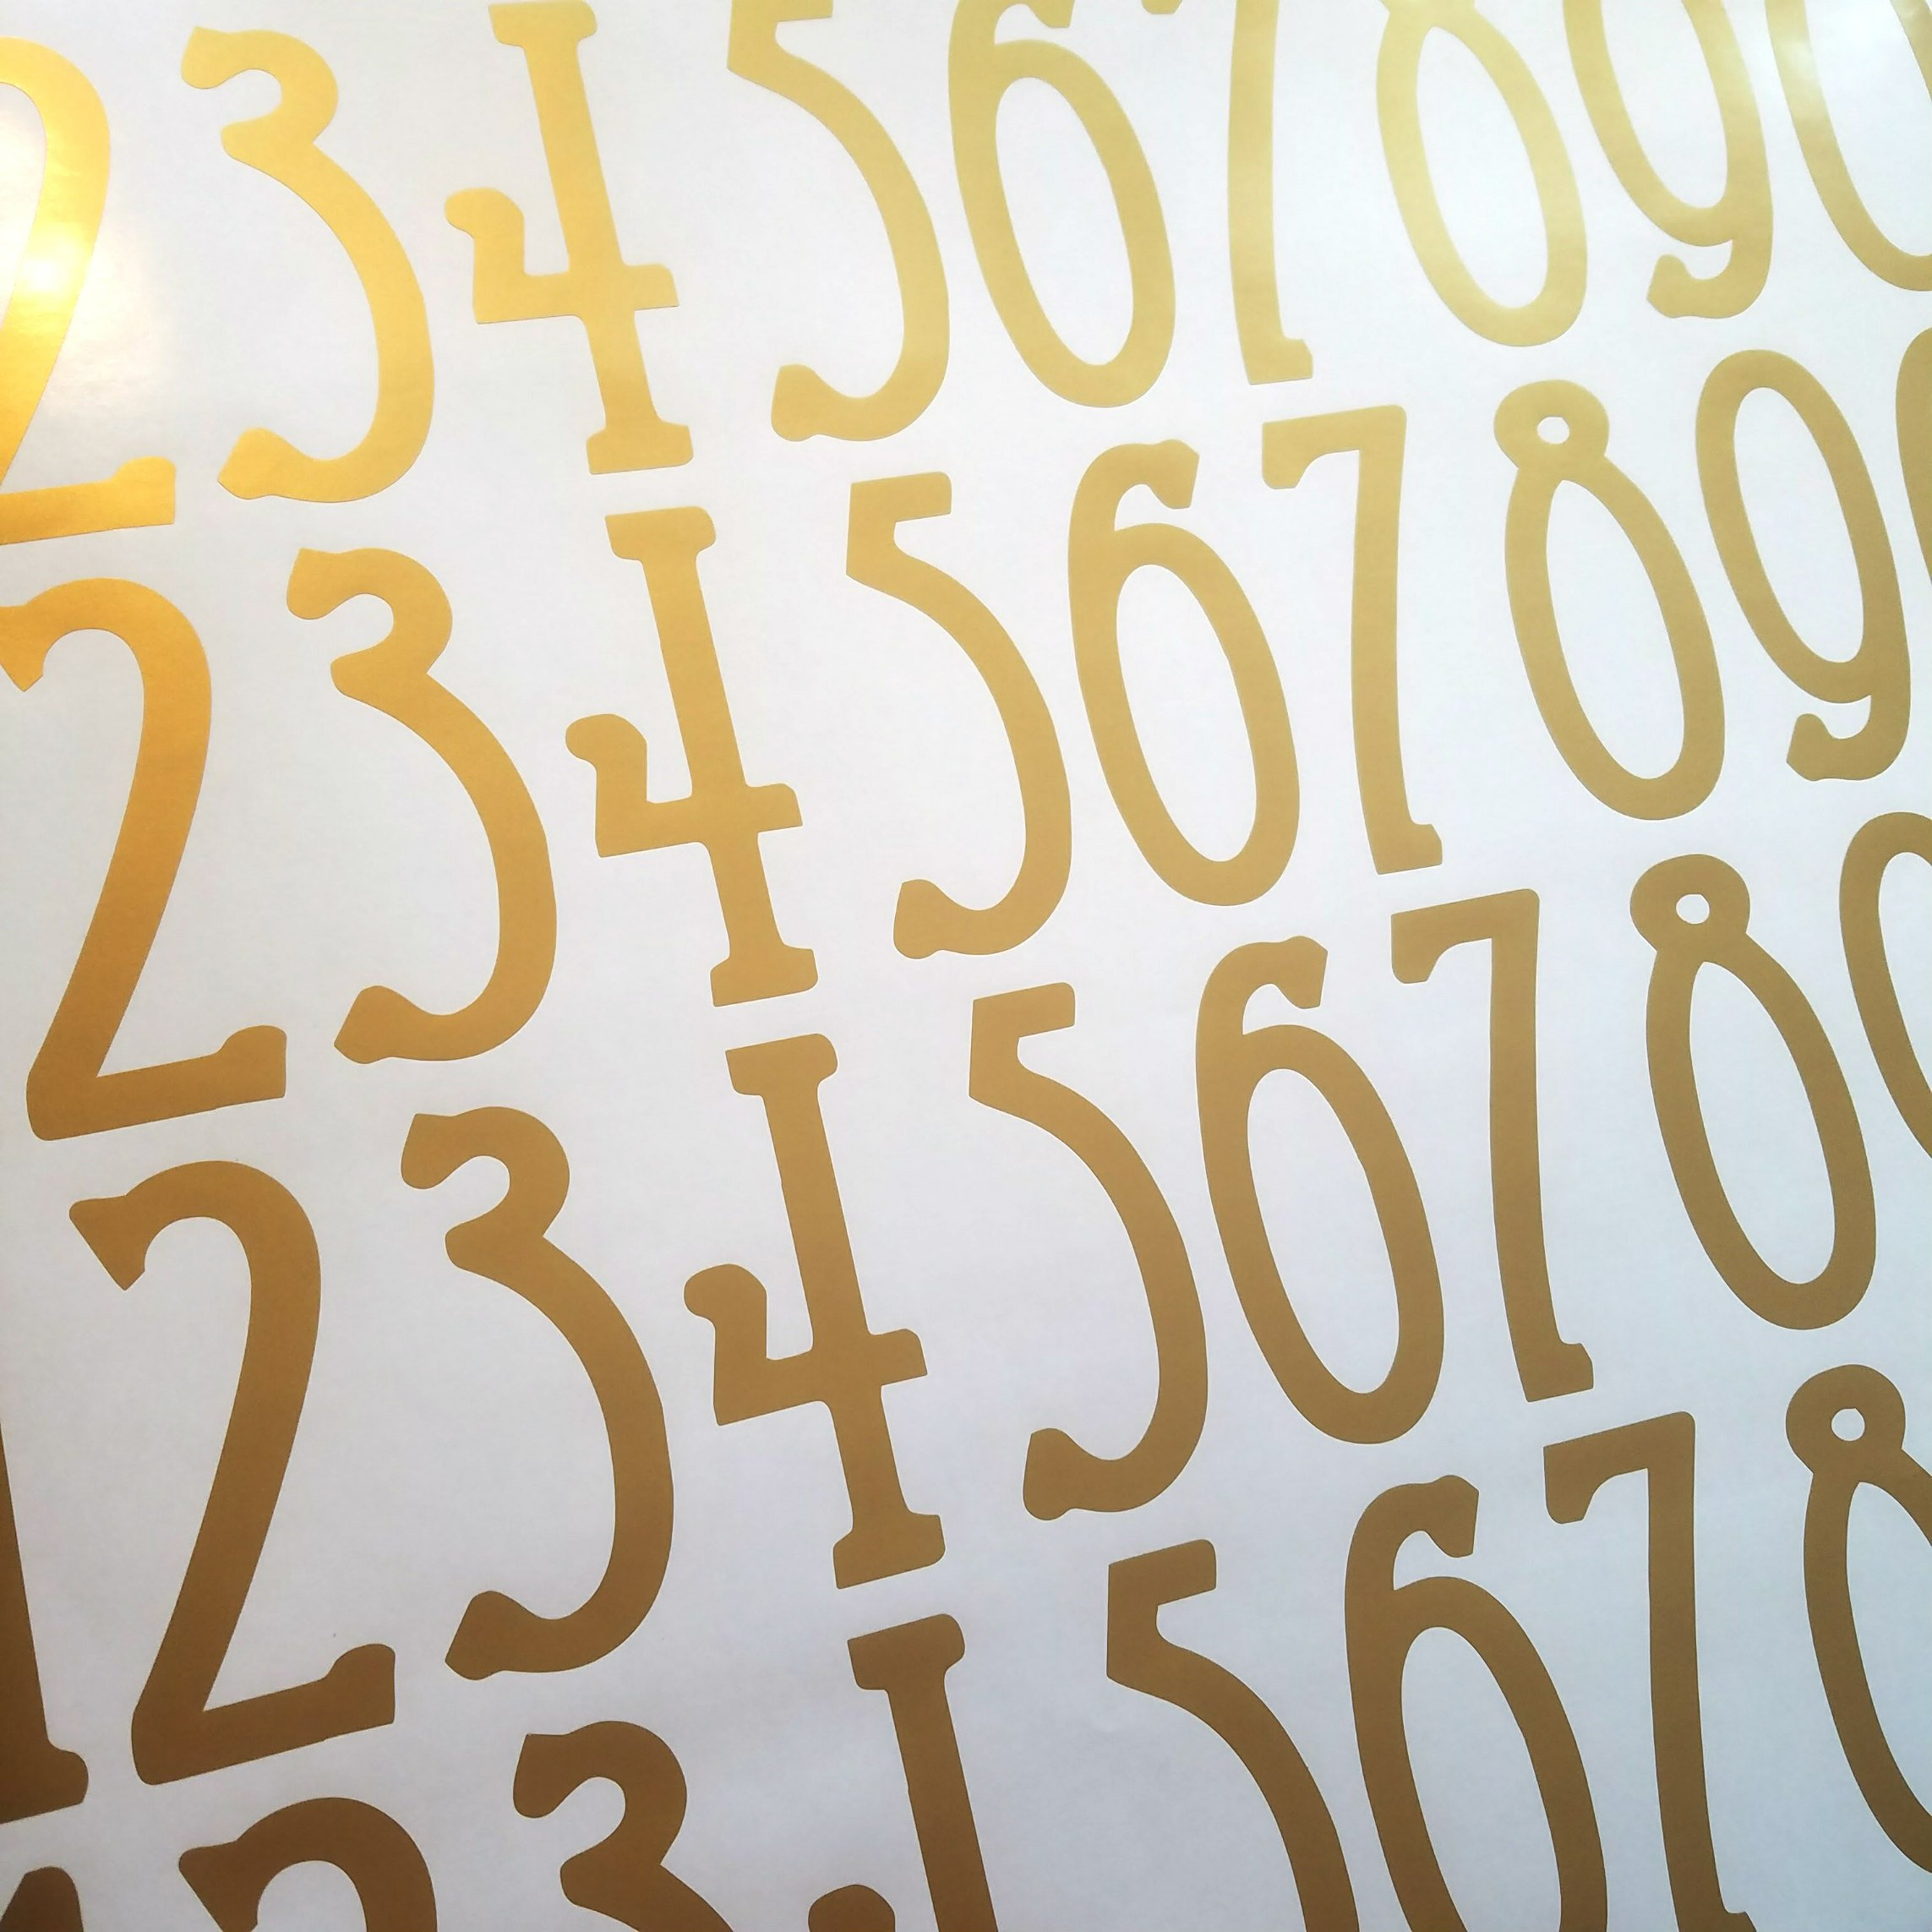 Arts & Crafts Style Self Adhesive Vinyl Numbers by Stonebrae and Strath (2 pack 4 inch, Soft Gold)